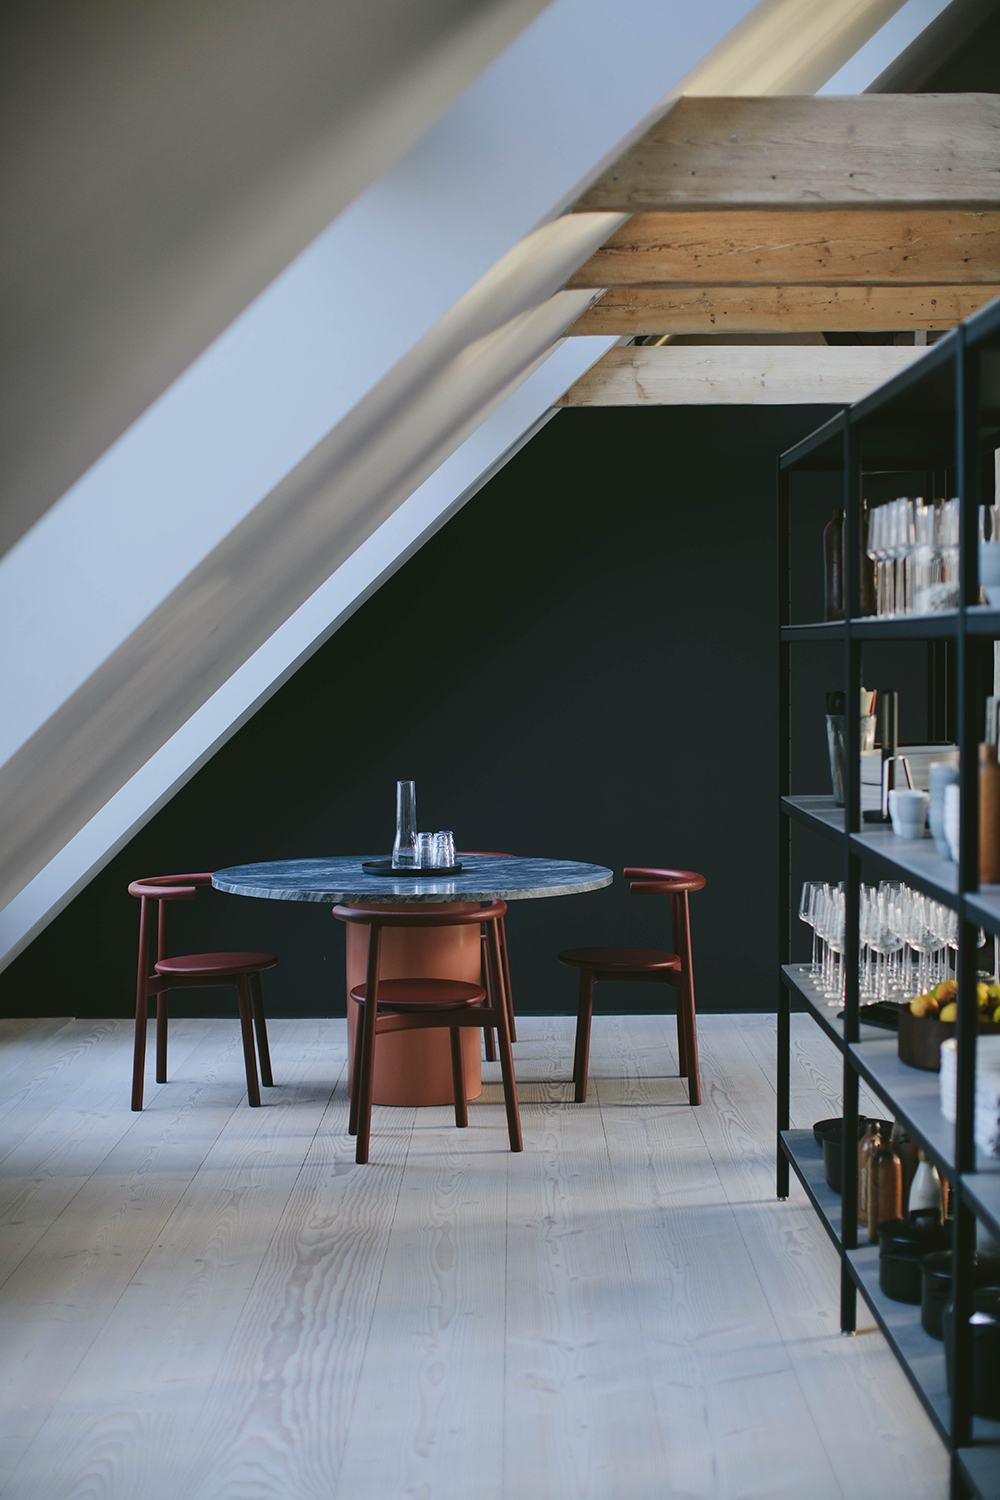 Vipp Küche A Weekend At The Stunning Vipp Loft In Copenhagen Our Food Stories